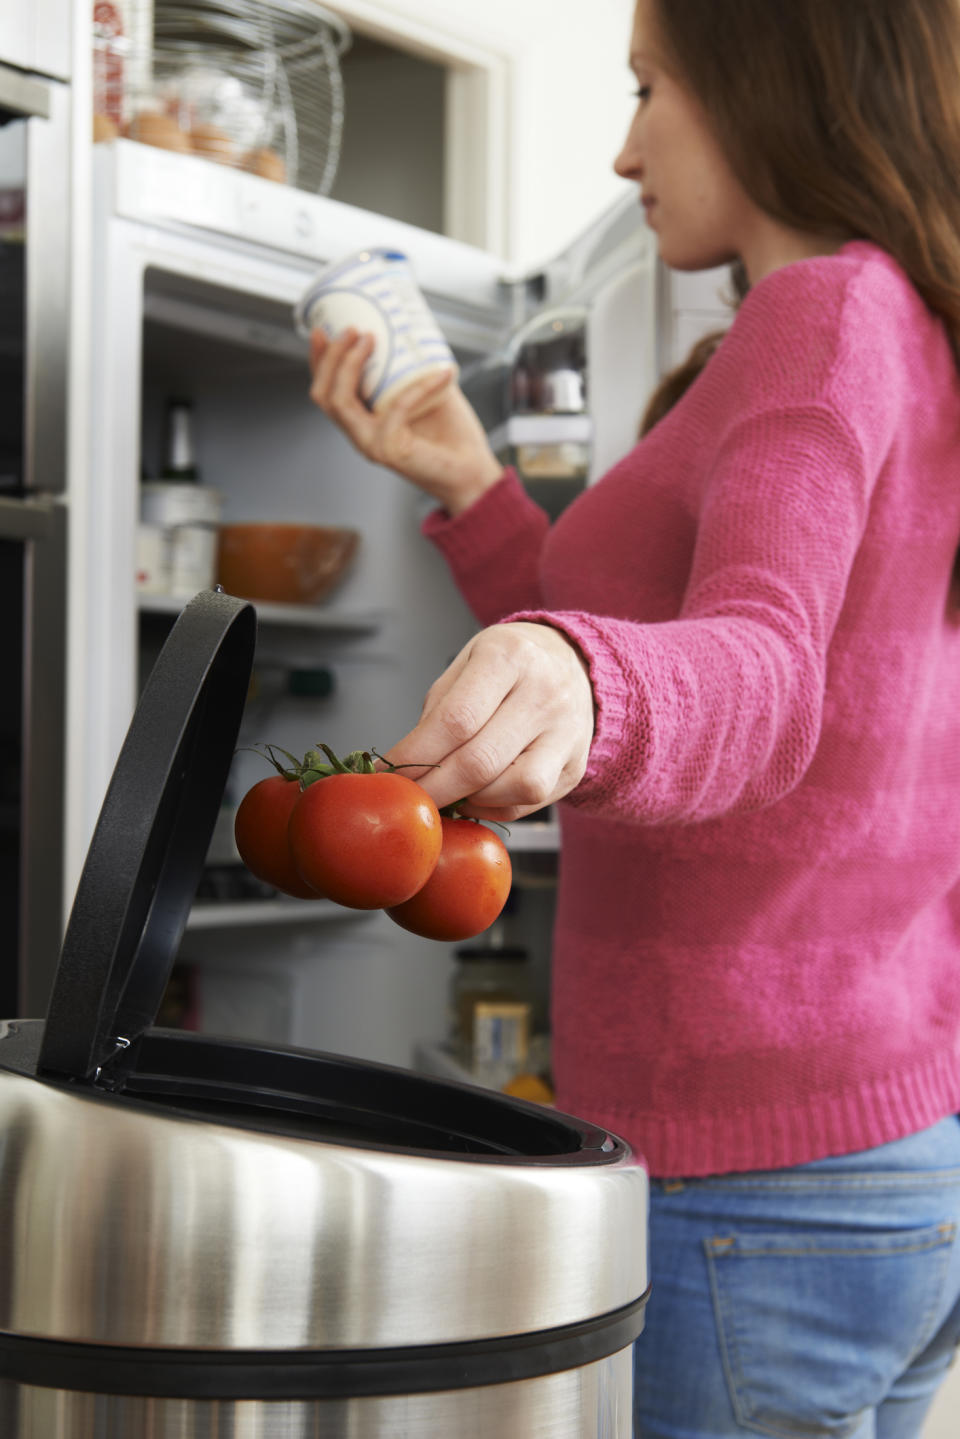 Eating food past its best-before date could help save food waste. (Getty Images)